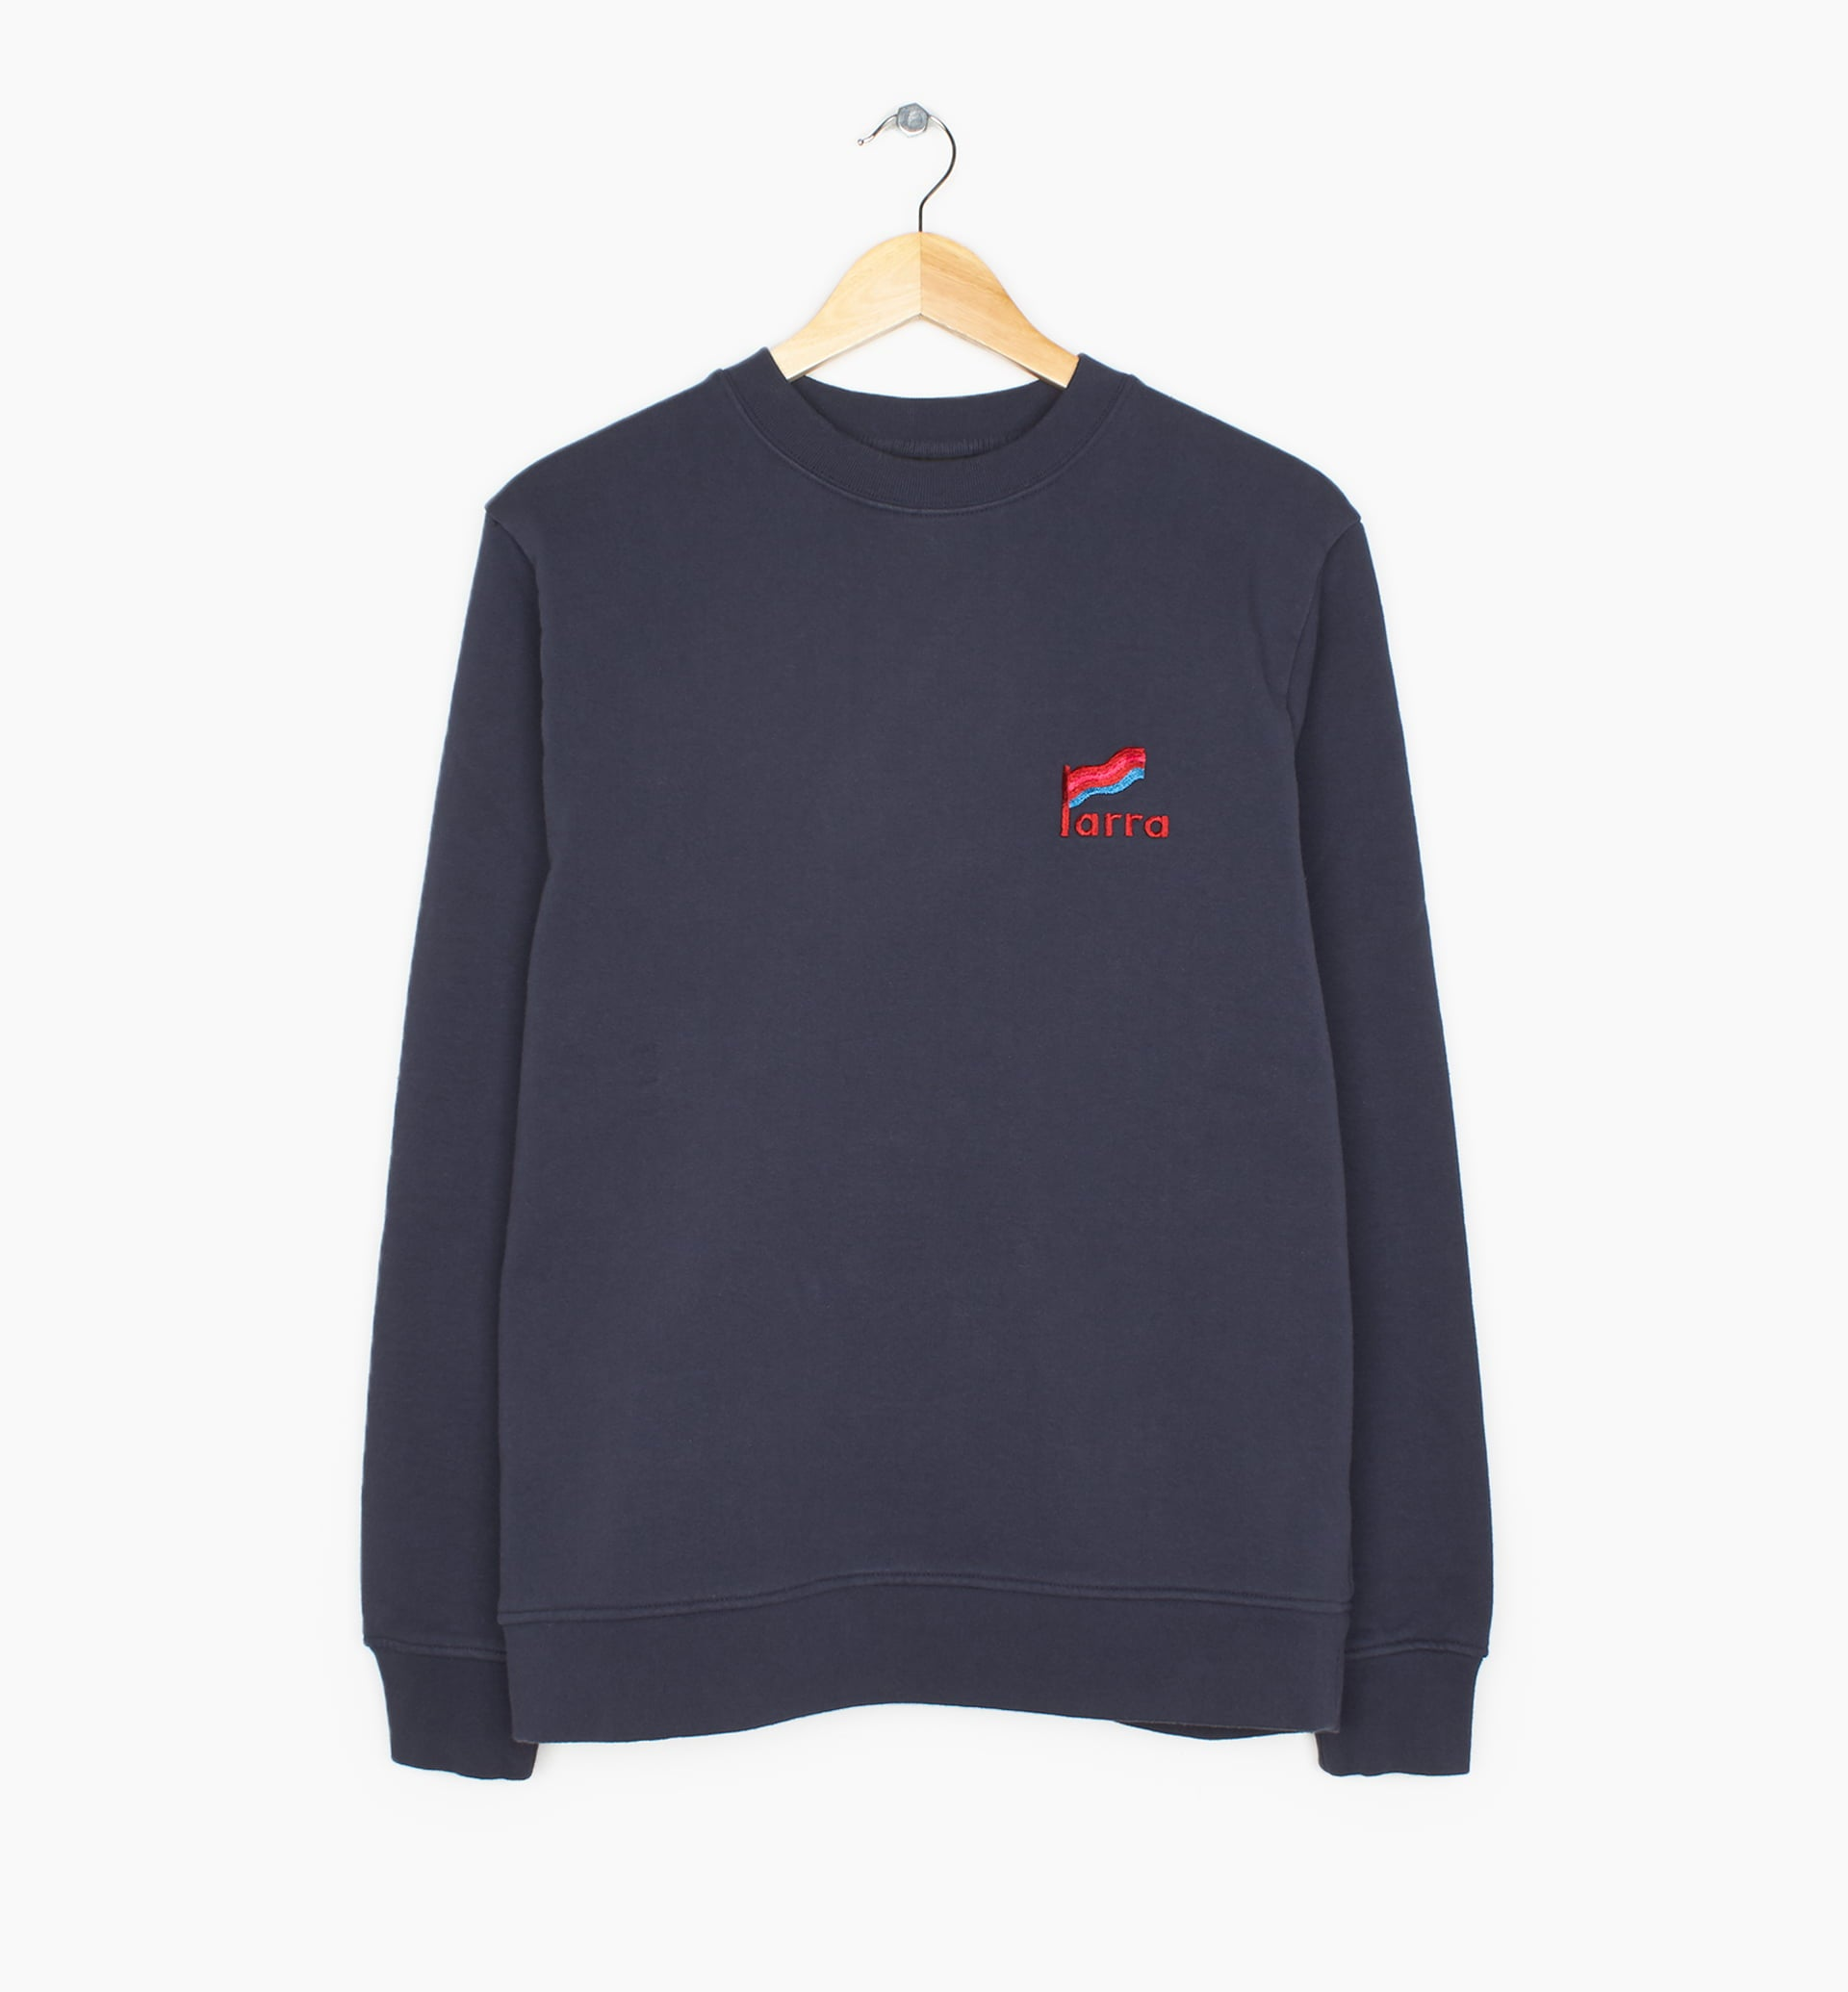 Parra - striped flag crew neck sweatshirt